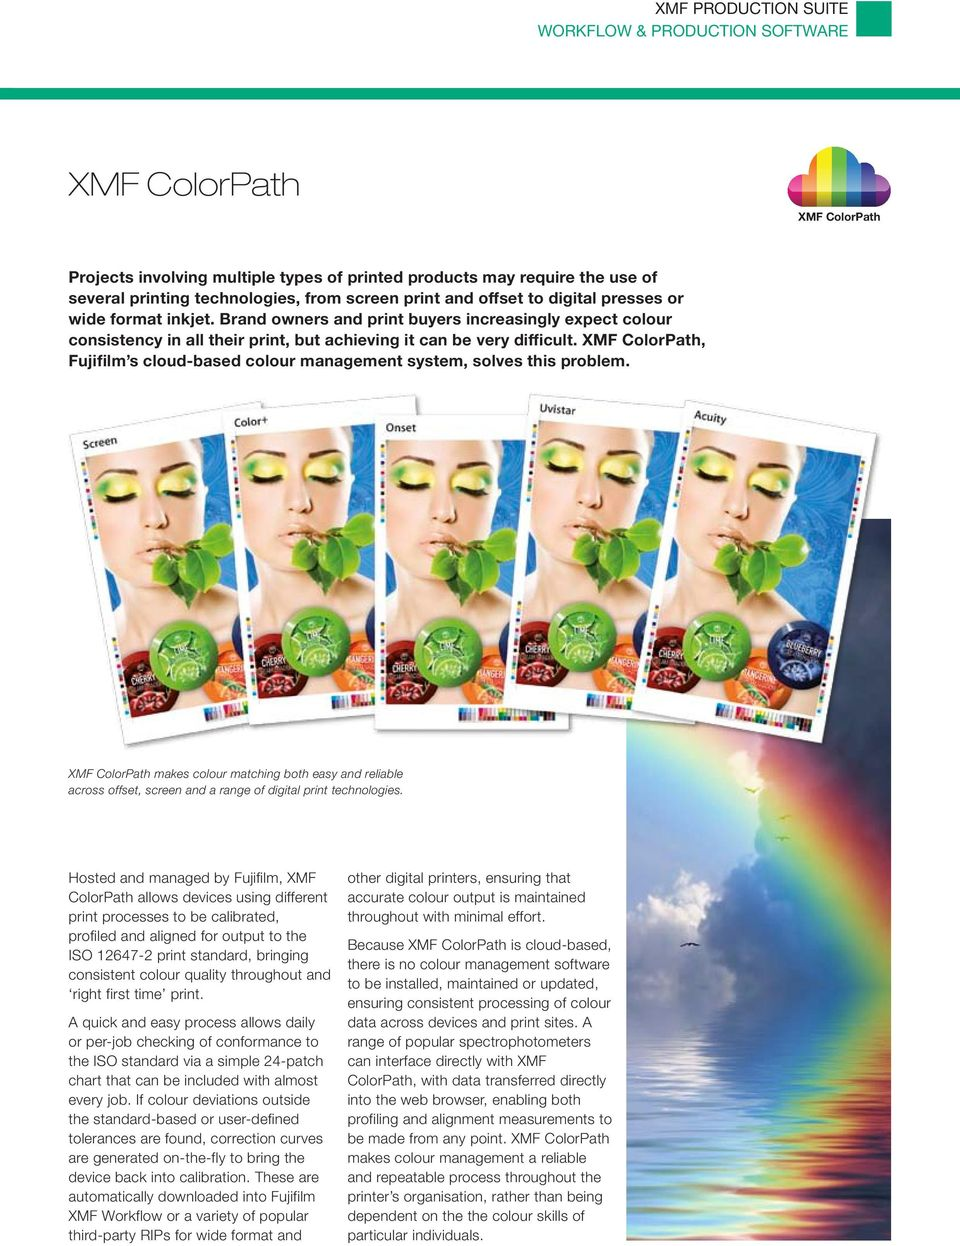 ColorPath, Fujifilm s cloud-based colour management system, solves this problem. ColorPath makes colour matching both easy and reliable across offset, screen and a range of digital print technologies.